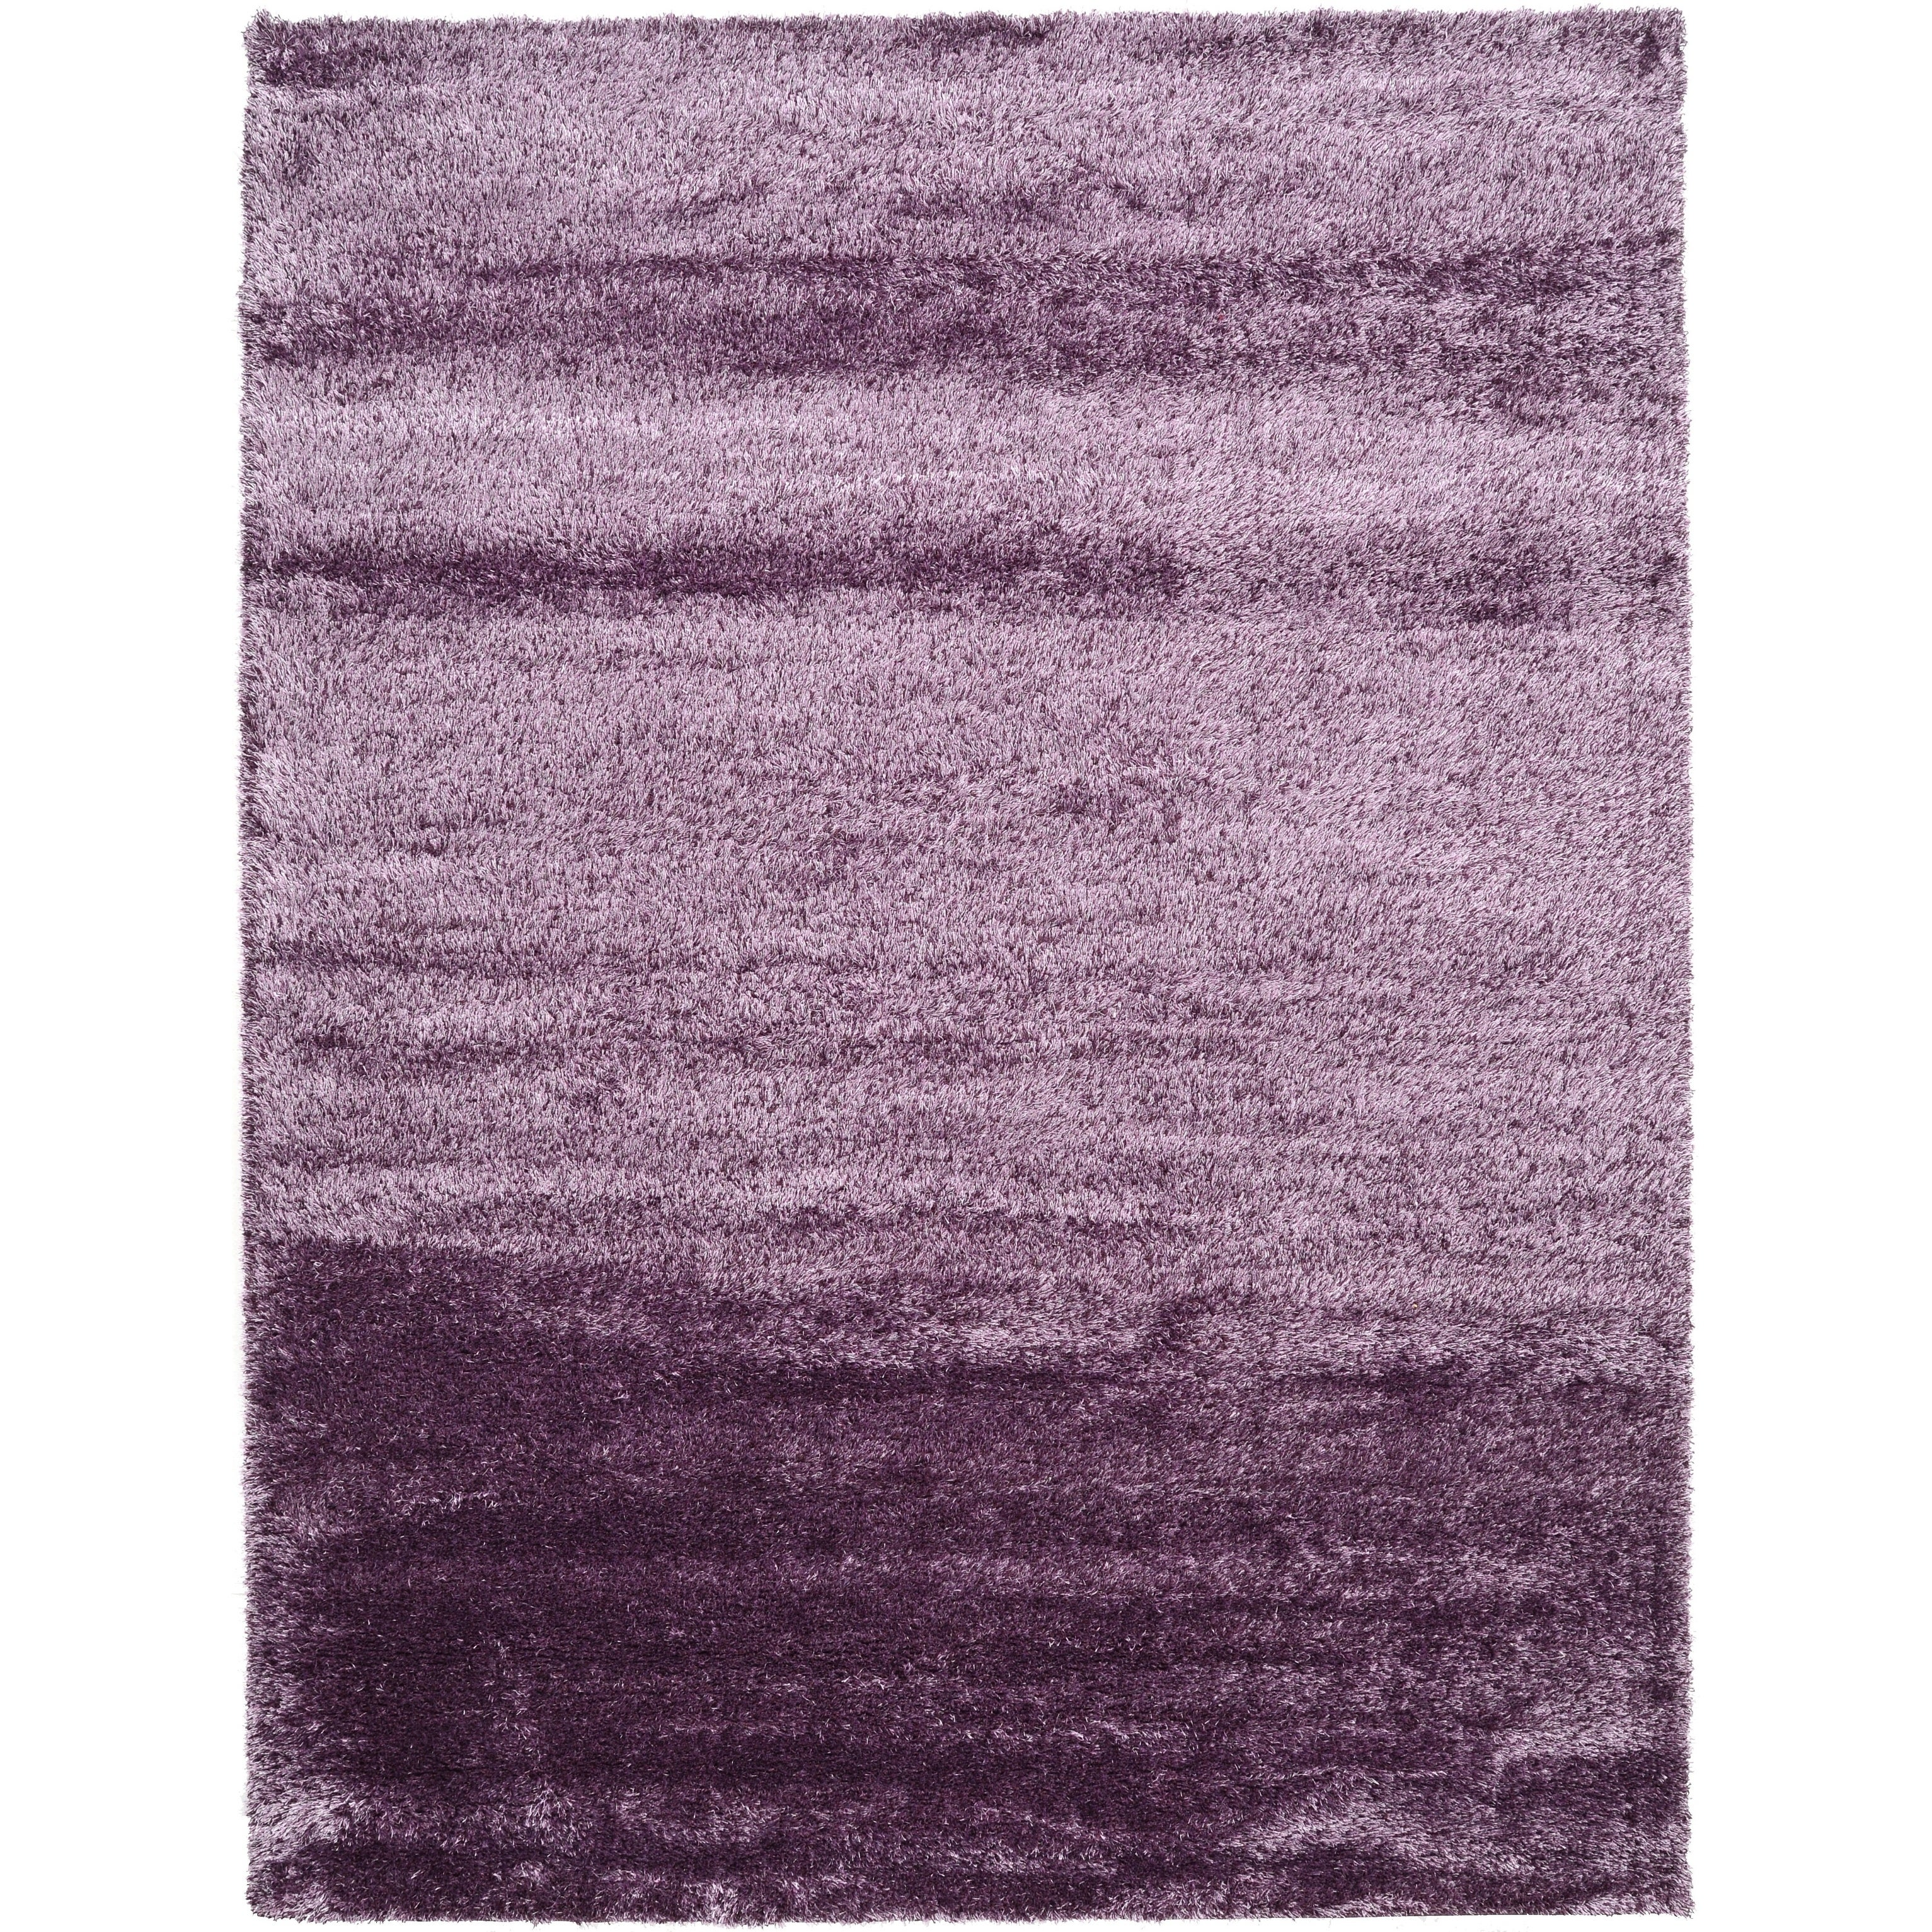 Purple 9 X 12 Area Rugs Online At Our Best Deals